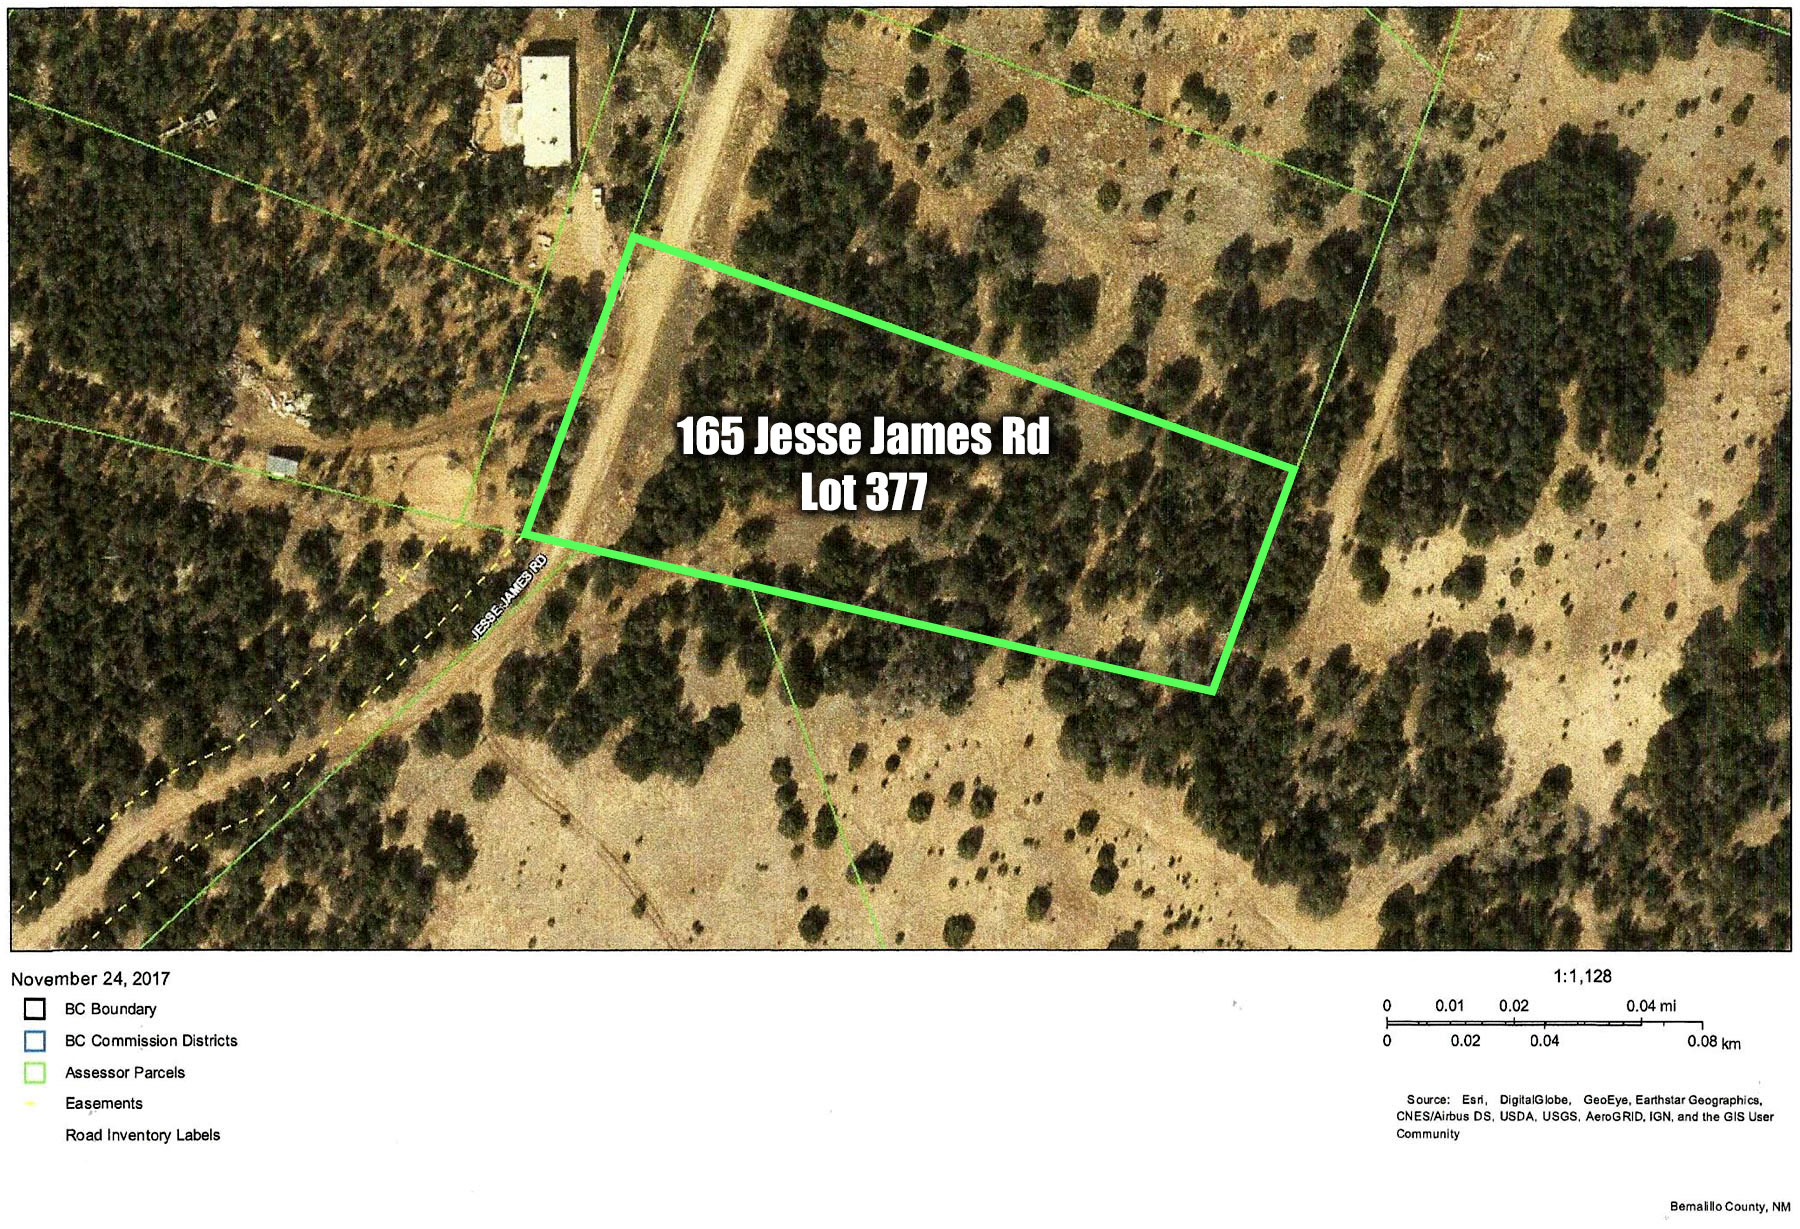 165 Jesse James Rd - Sundance Mountain Ranches